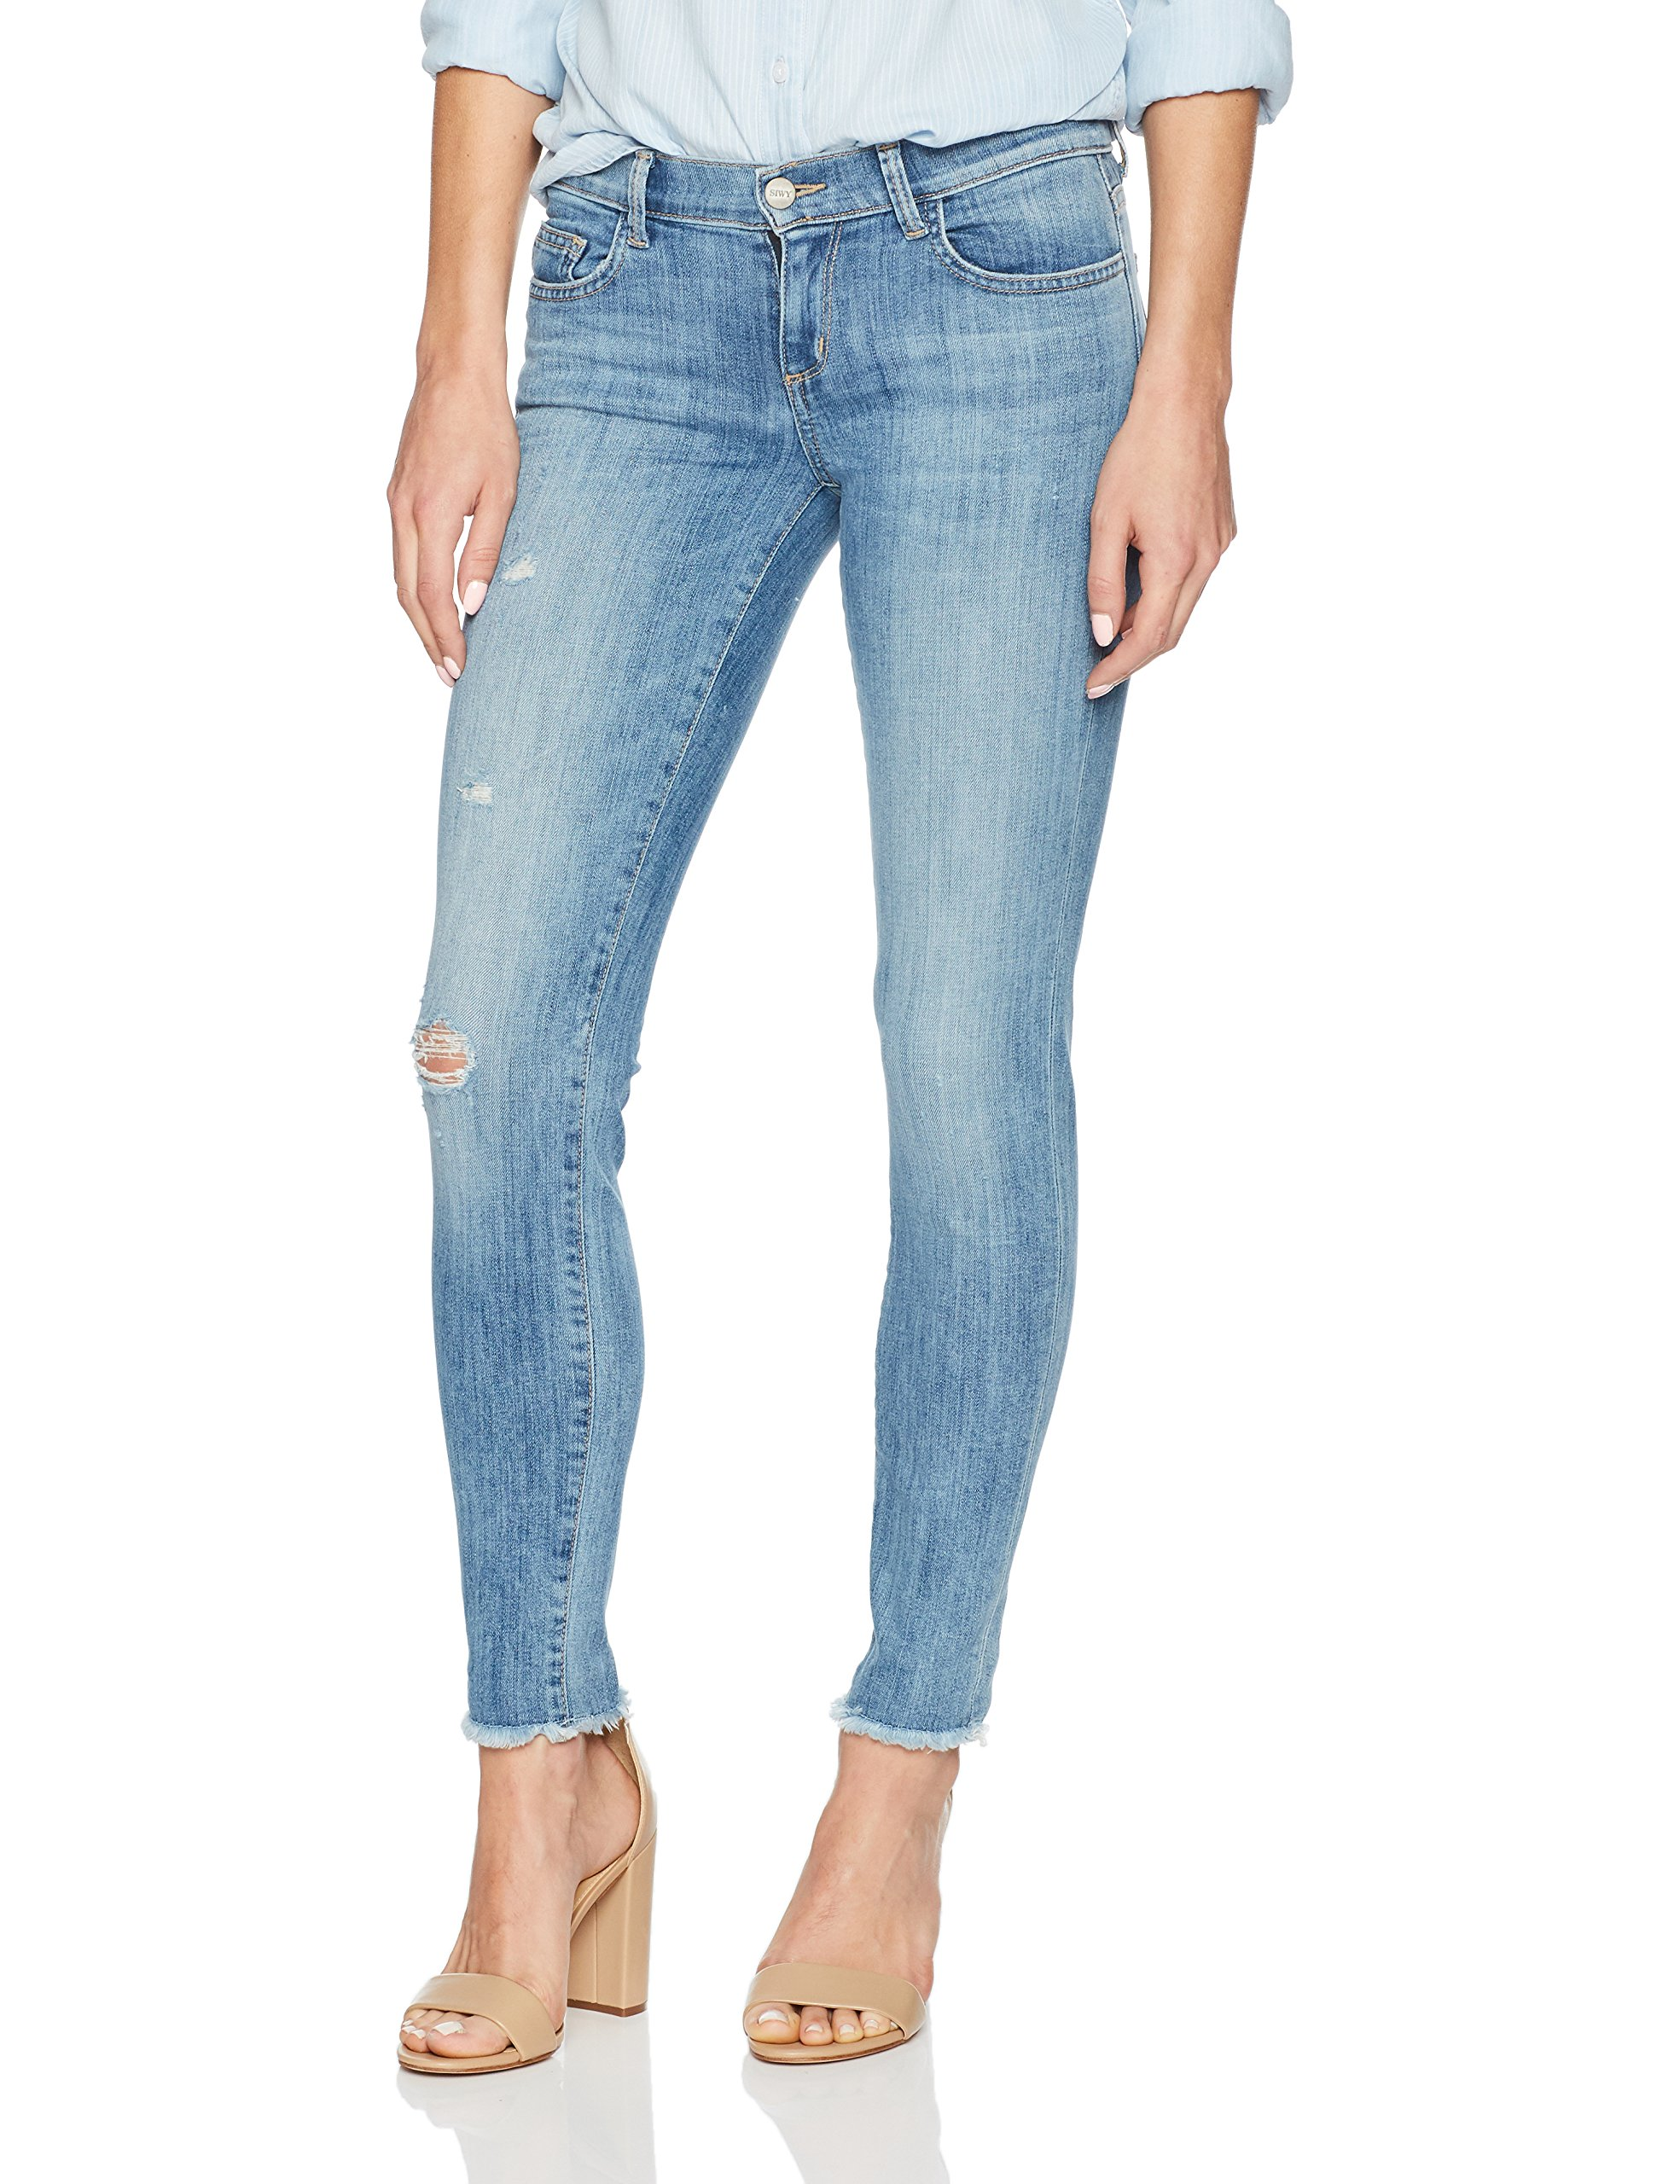 Siwy Women's Sara Low Rise Skinny Jeans, the Look of Love, 26